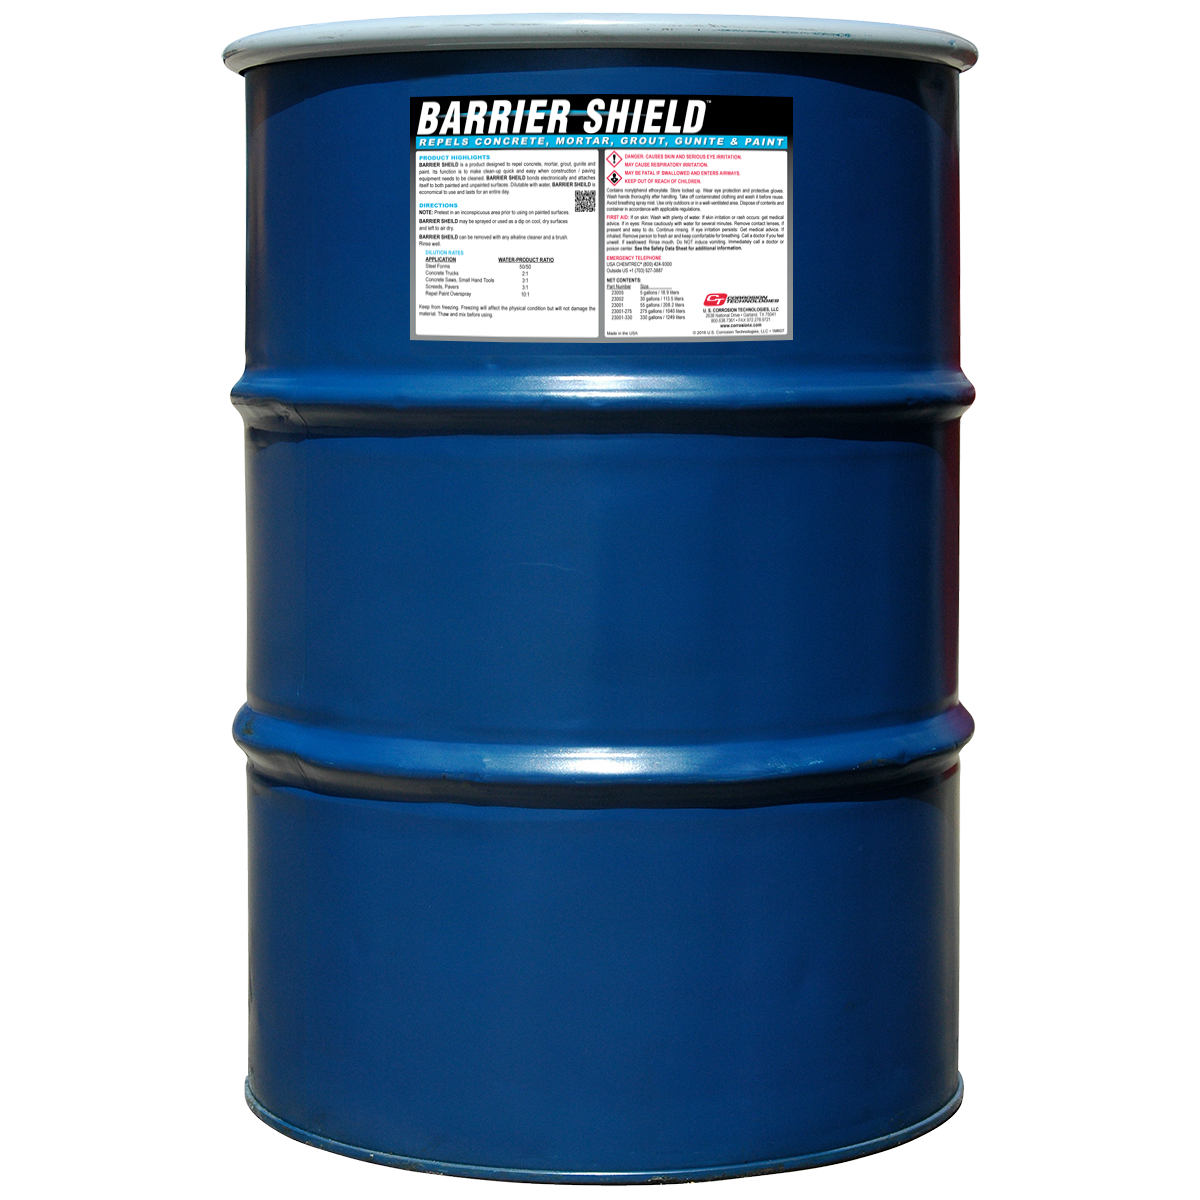 Barrier Shield concrete repellent coating